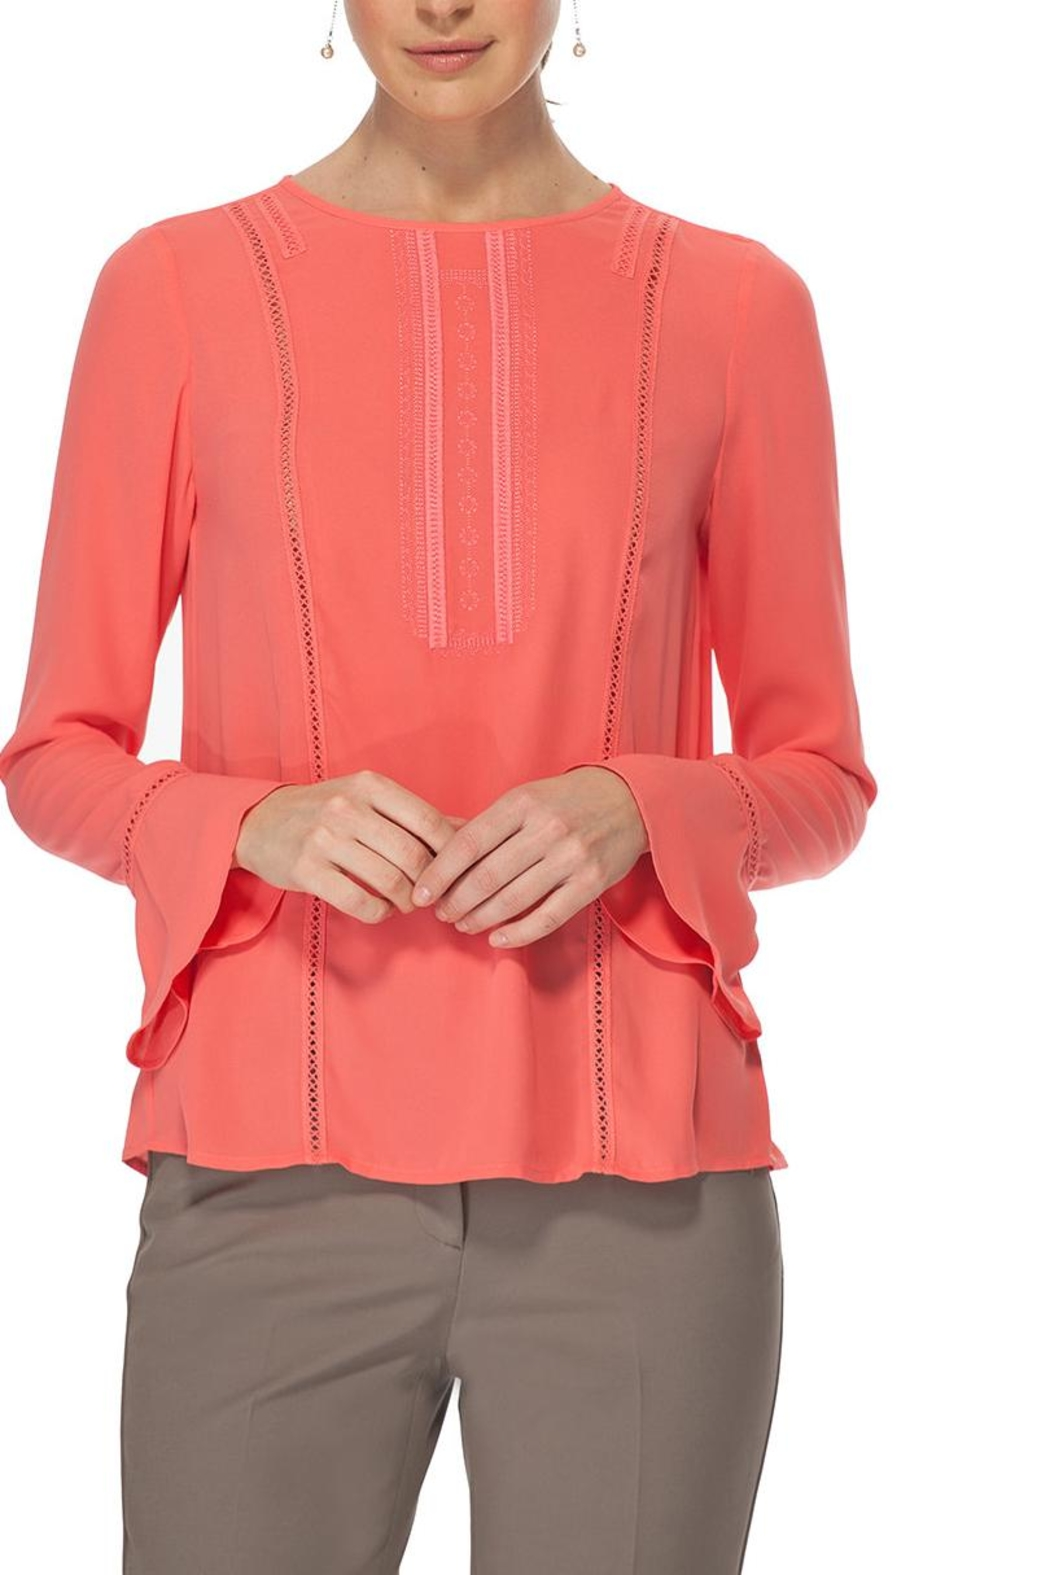 TRISTAN Coral Embroidery Blouse - Main Image